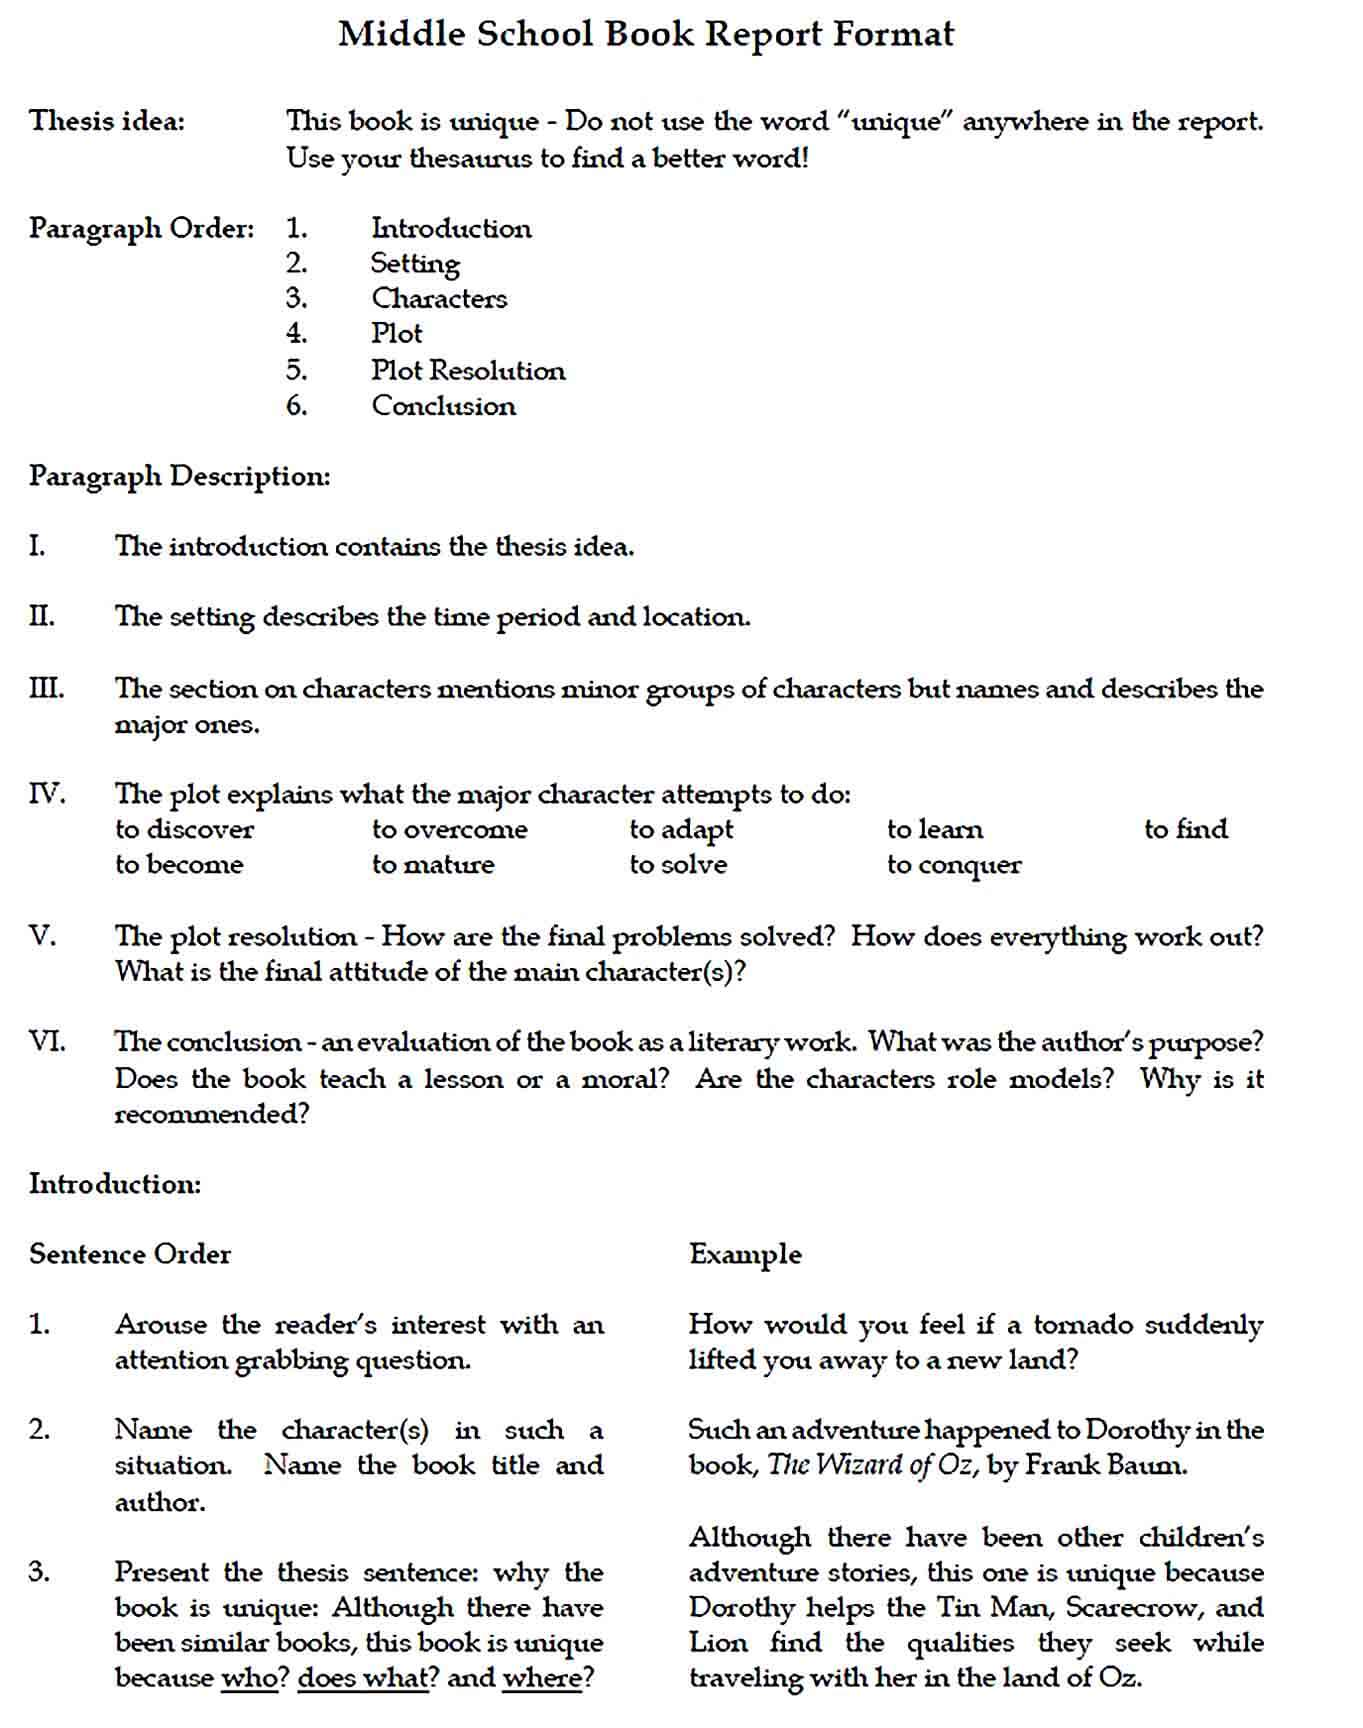 Sample Middle School Book Report Format 1